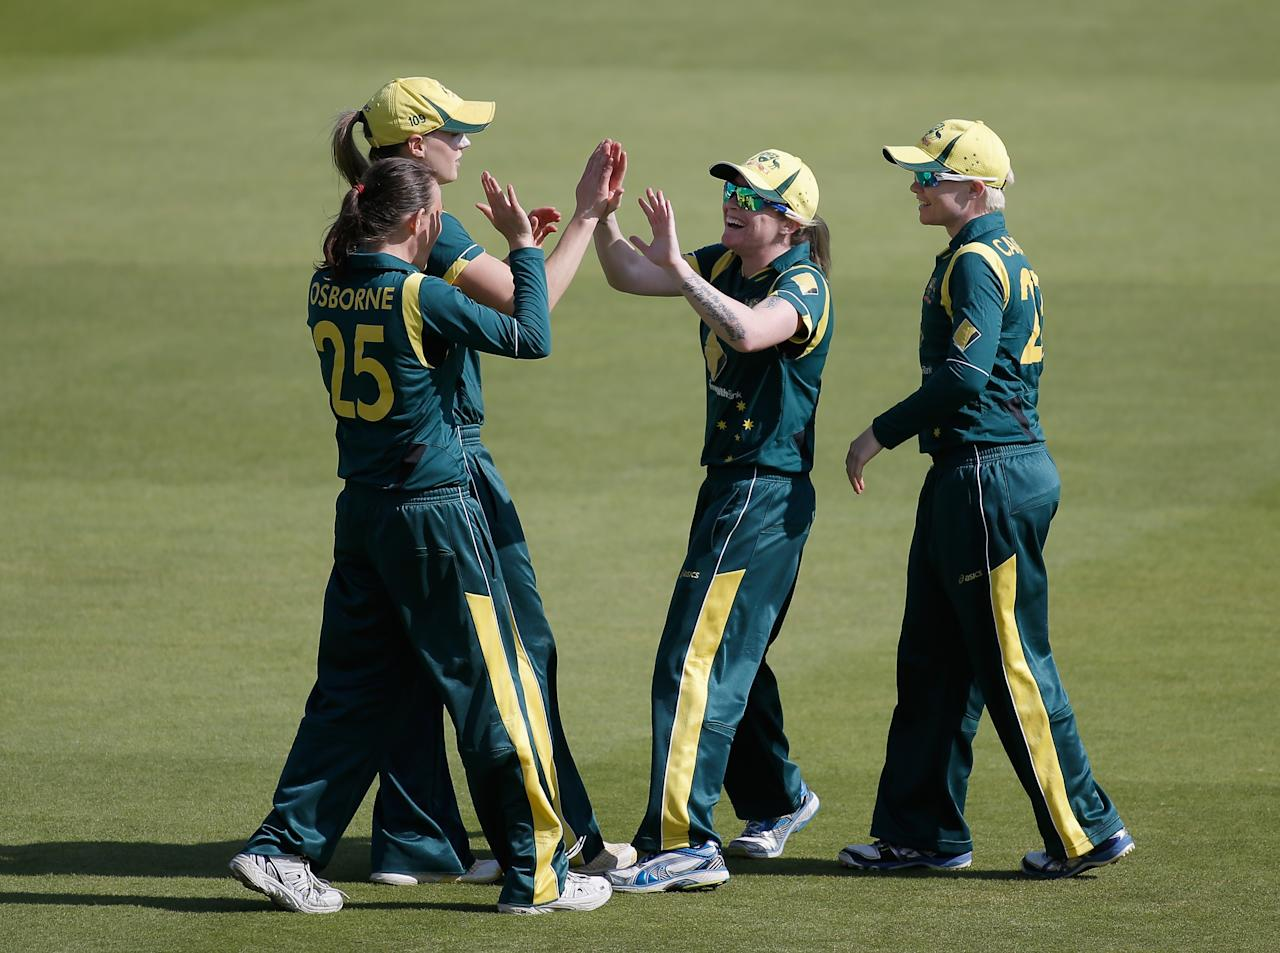 LONDON, ENGLAND - AUGUST 20:  Sarah Coyte of Australia (2R) celebrates with team mates after catching Arran Brindle of England (not pictured) during the first NatWest One Day International match between England and Australia at Lord's Cricket Ground on August 20, 2013 in London, England.  (Photo by Harry Engels/Getty Images)